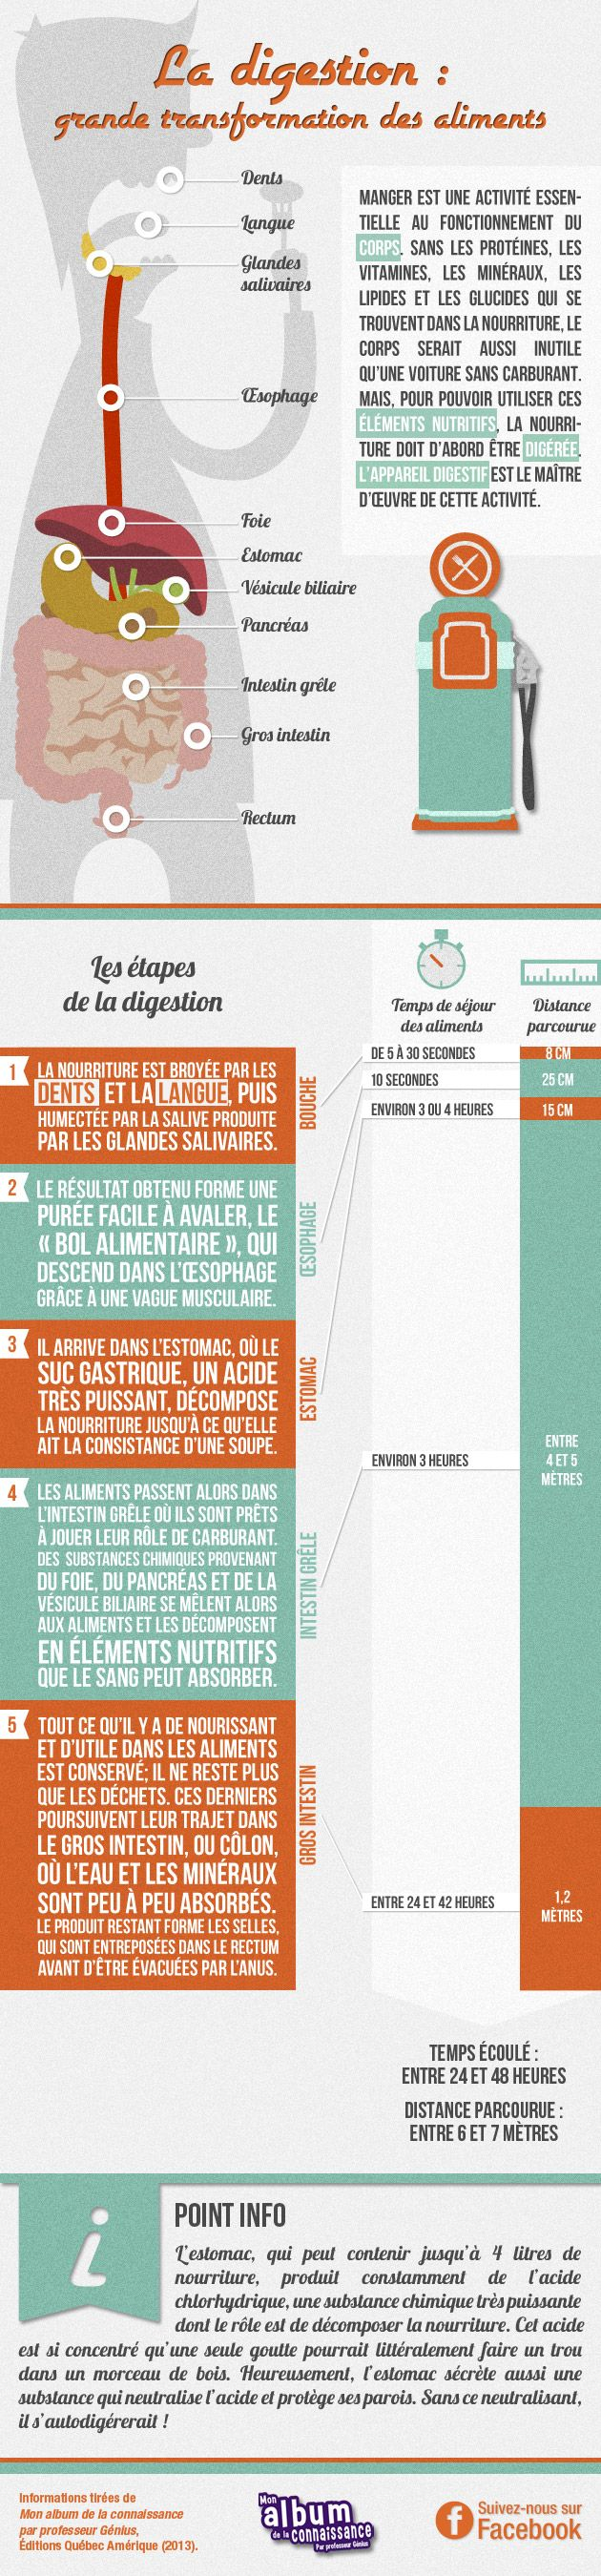 La digestion : grande transformation des aliments